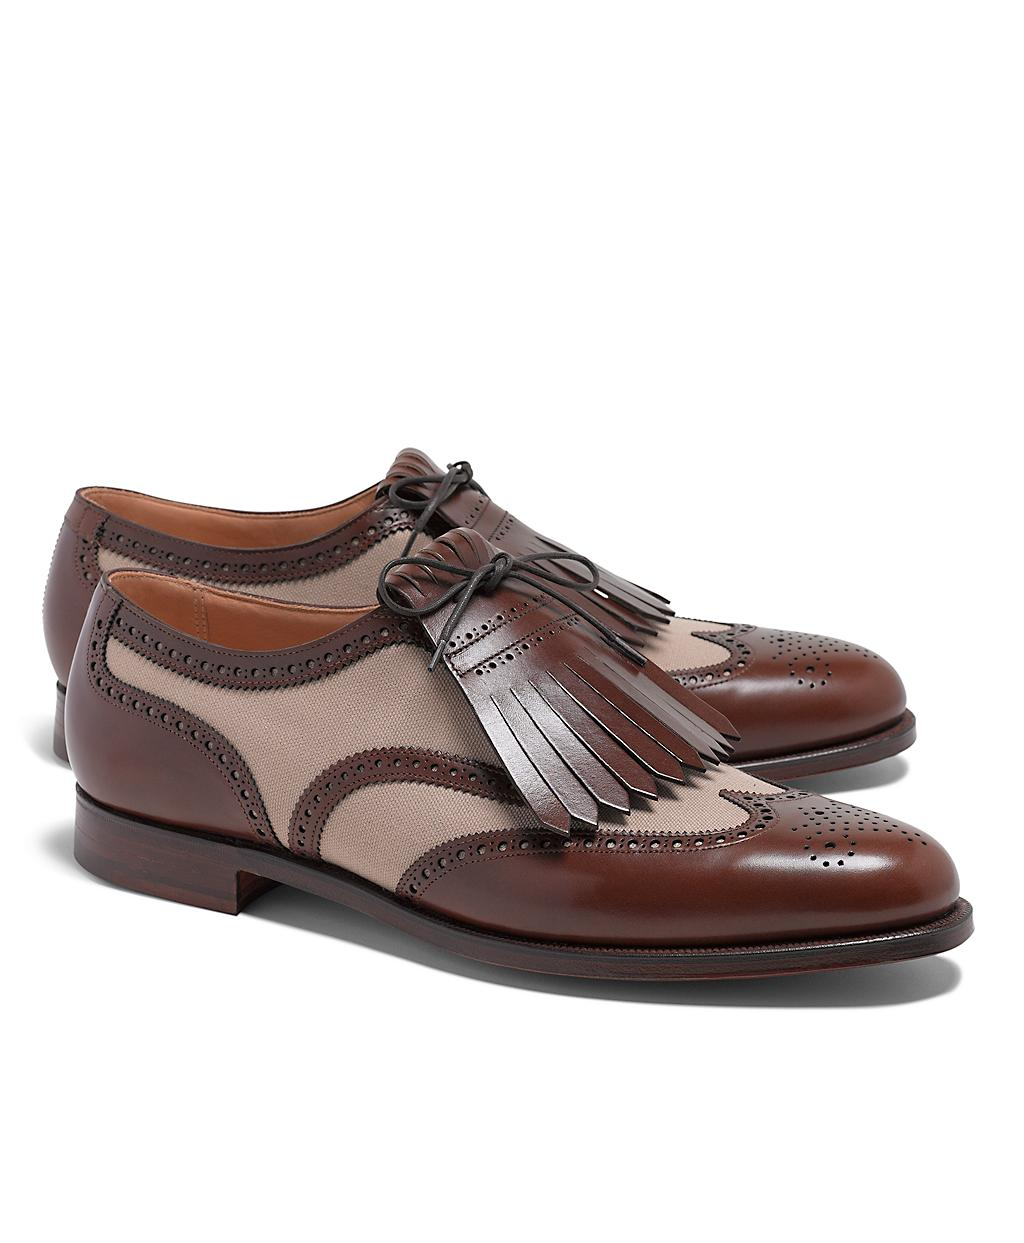 Leather Oxfords Golf Shoes